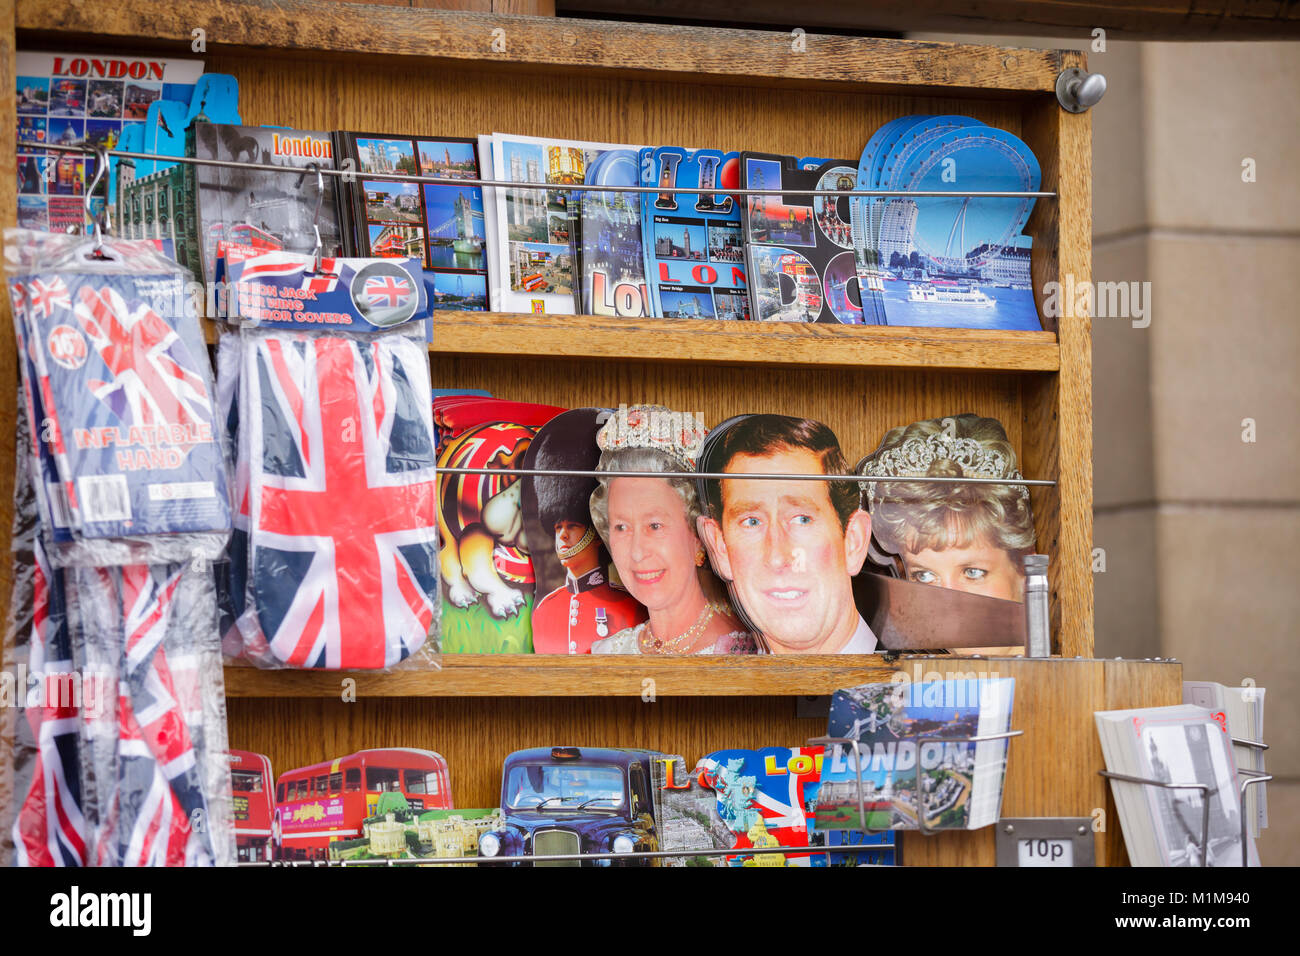 LONDON, UK - OCTOBER 28, 2012: Street souvenir stall with cut out postcards for sale - Stock Image